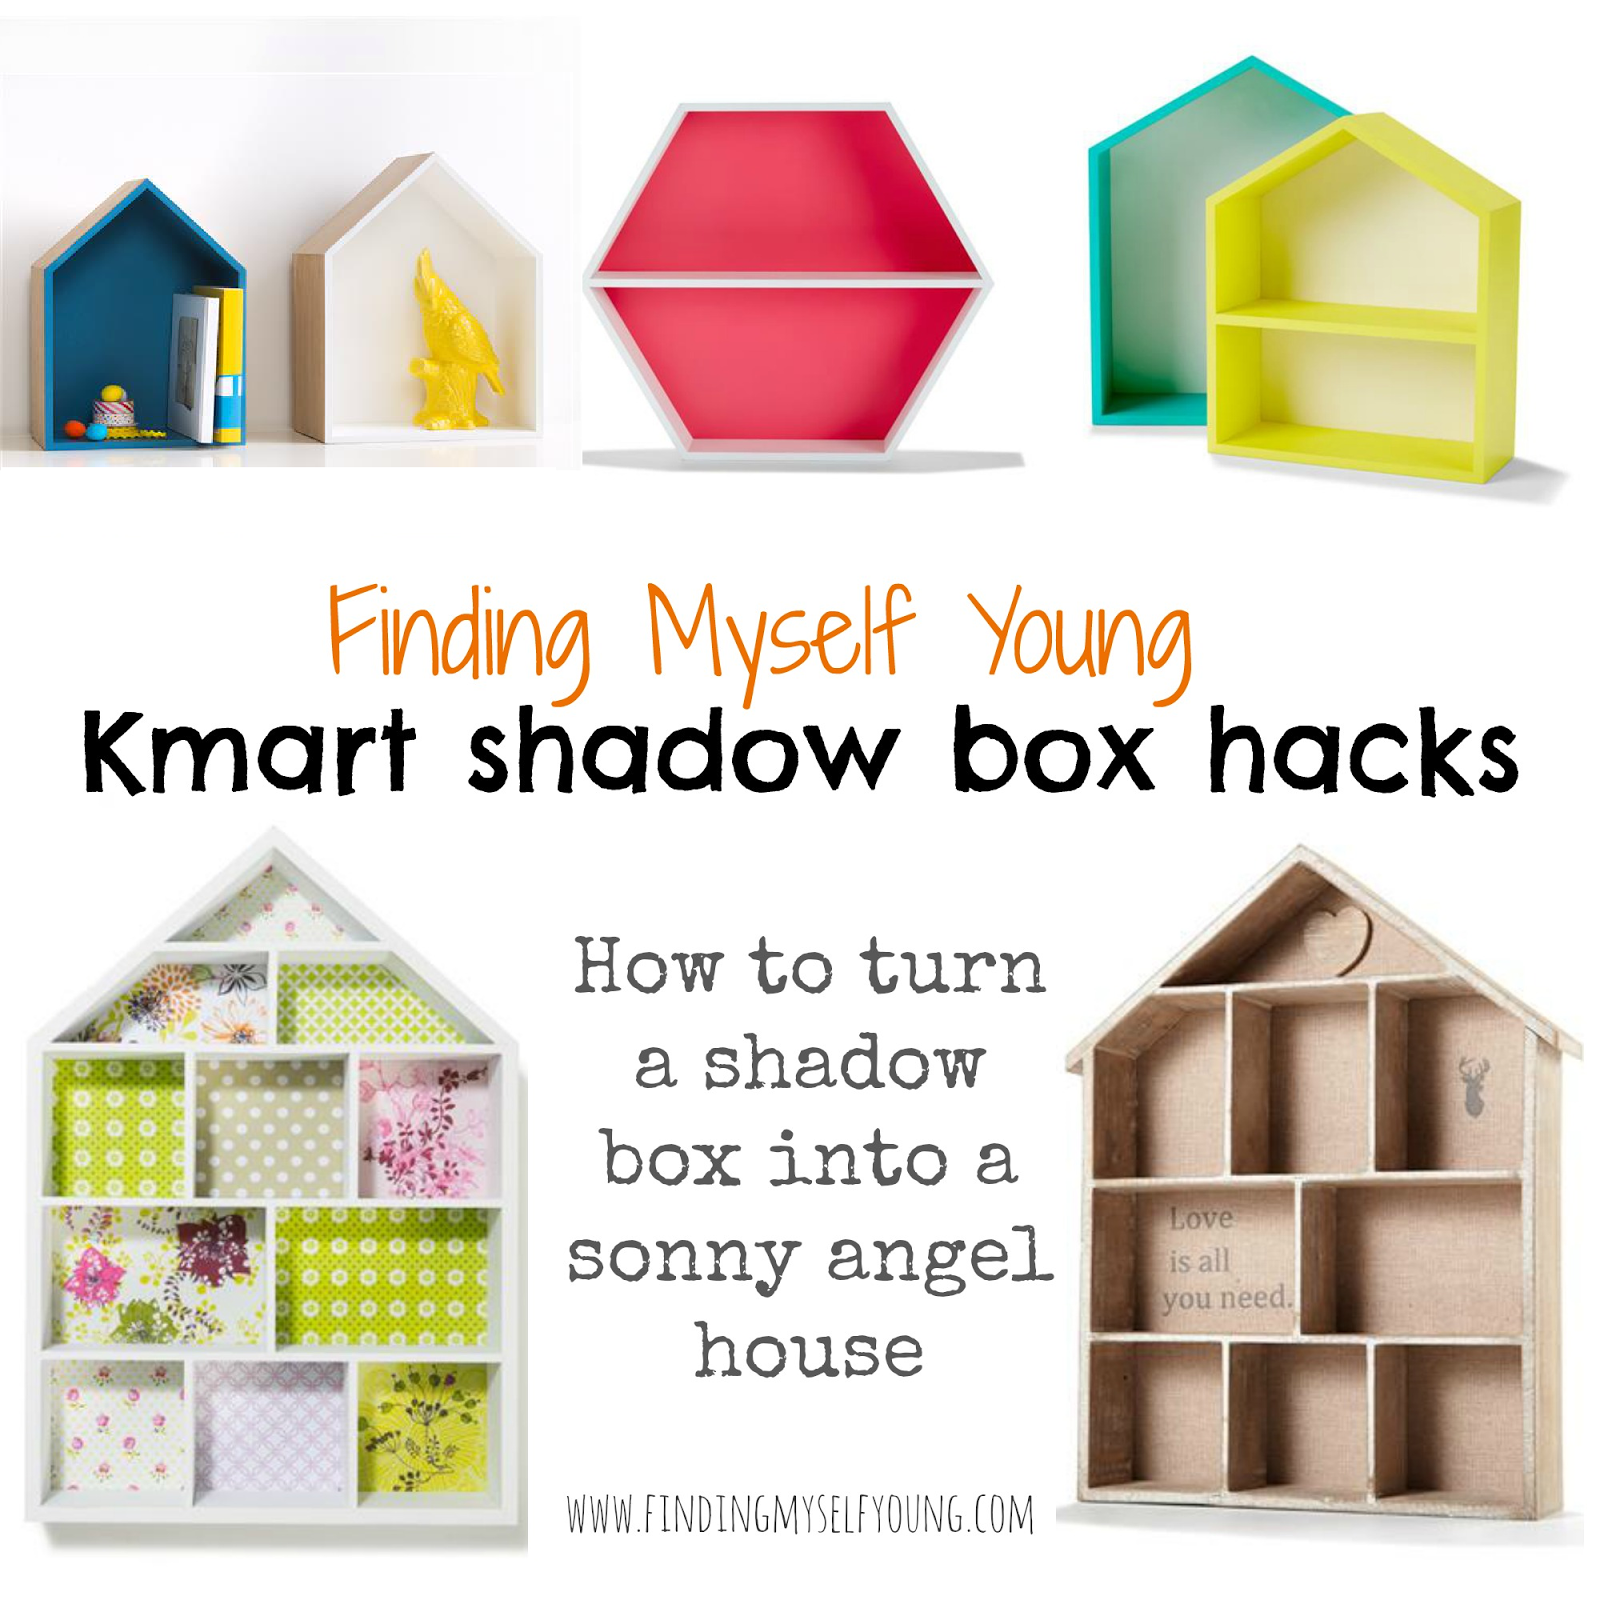 Kmart Hack How To Transform Shadow Boxes Into Sonny Angel Houses Finding Myself Young